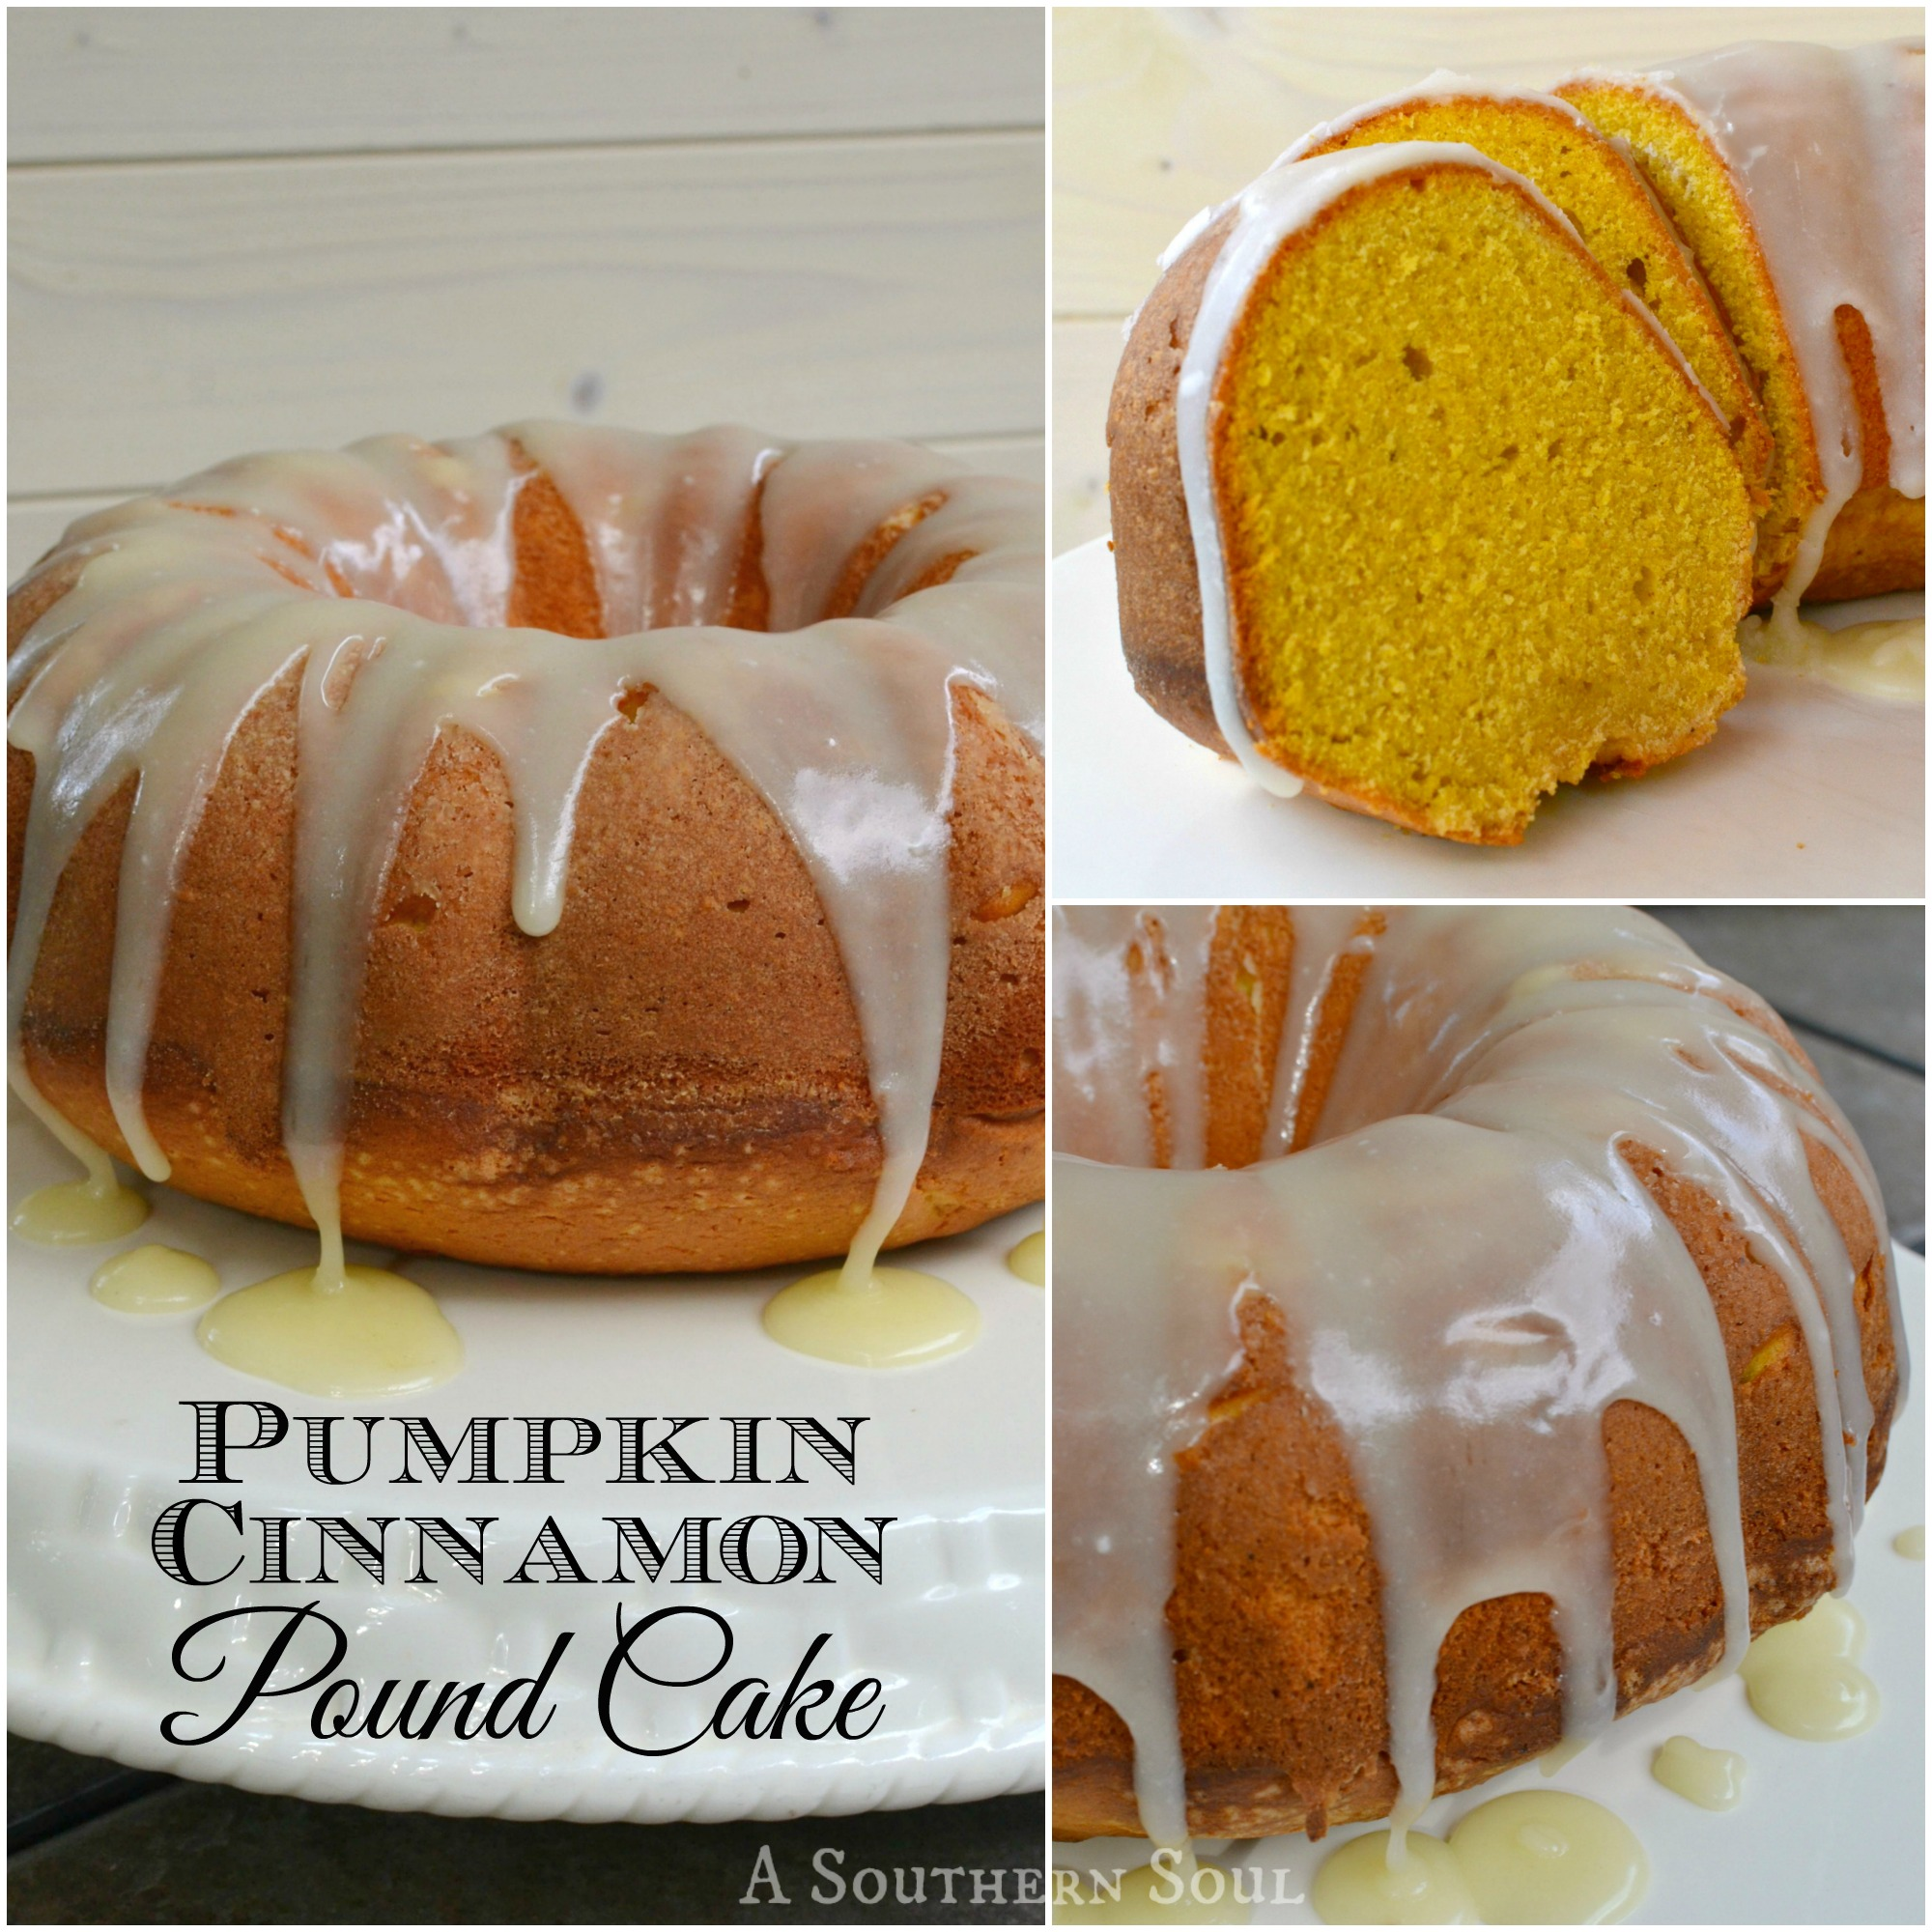 pumpkin-pound-cake-fb